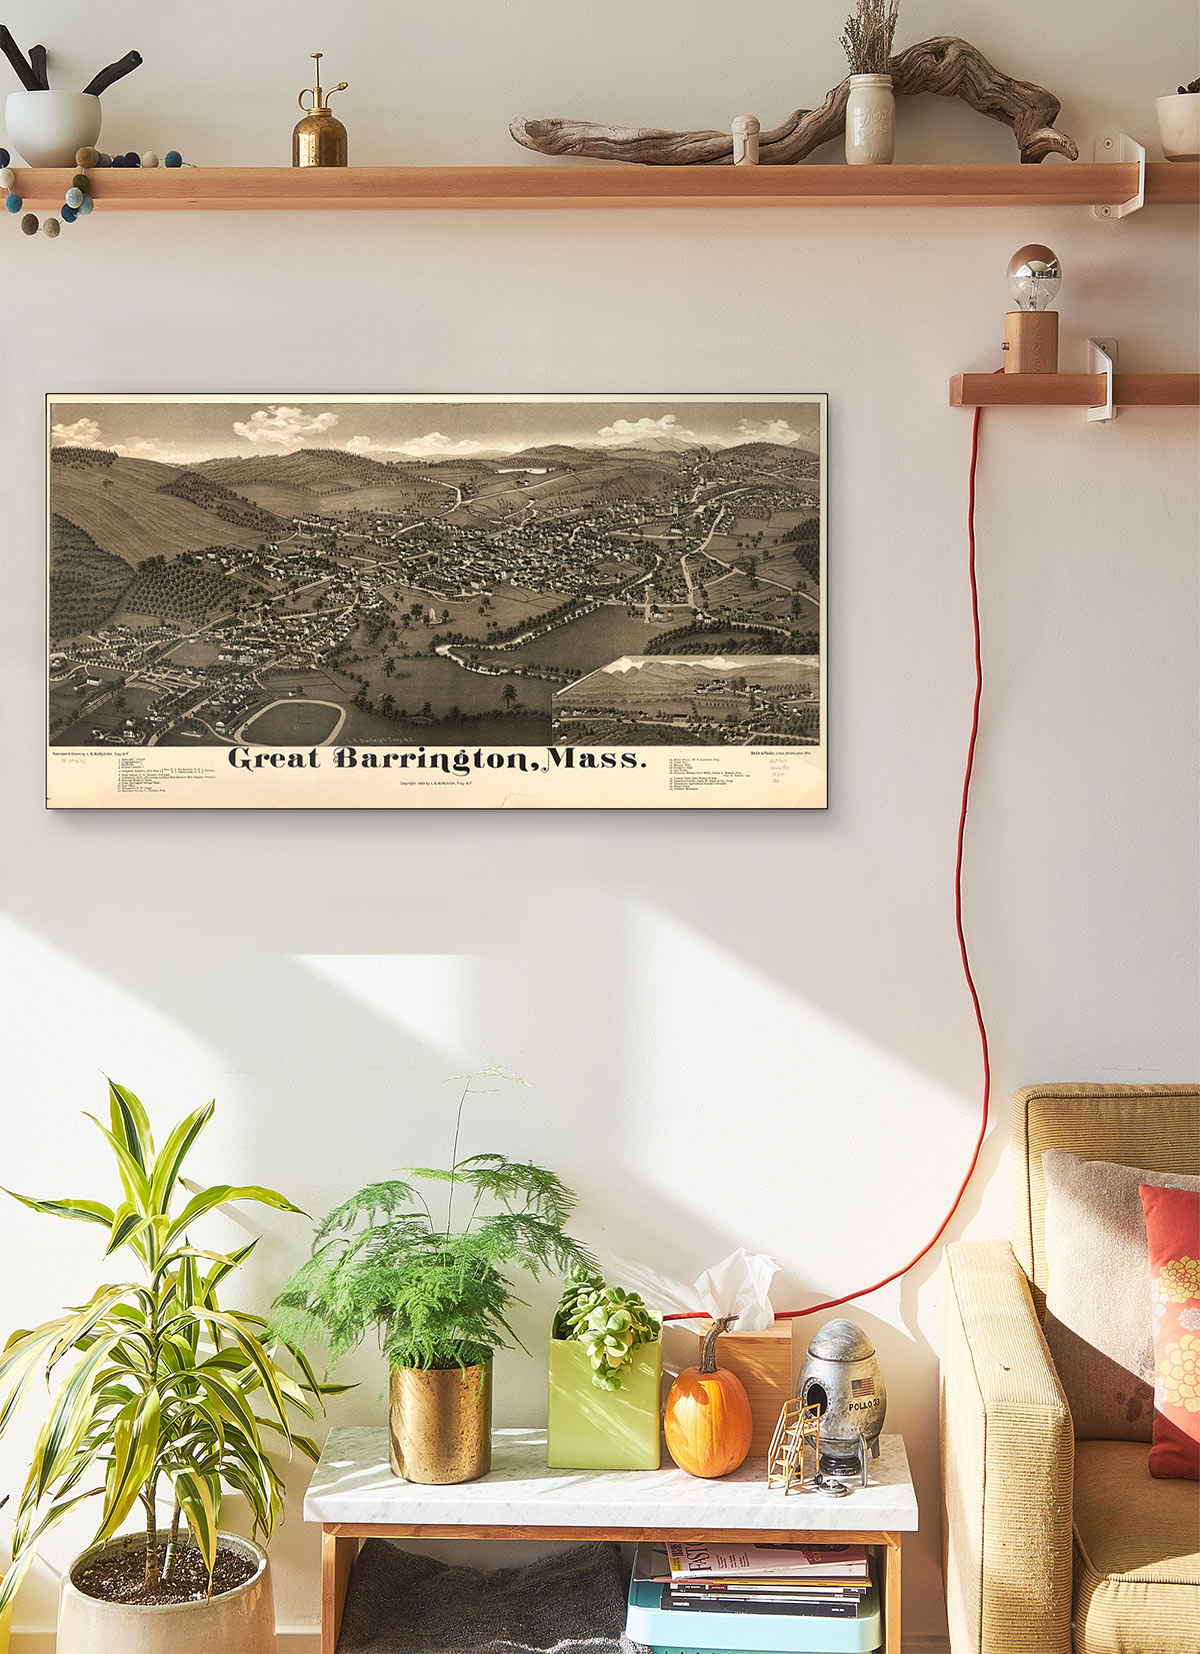 Great Barrington Mass LARGE Vintage Map